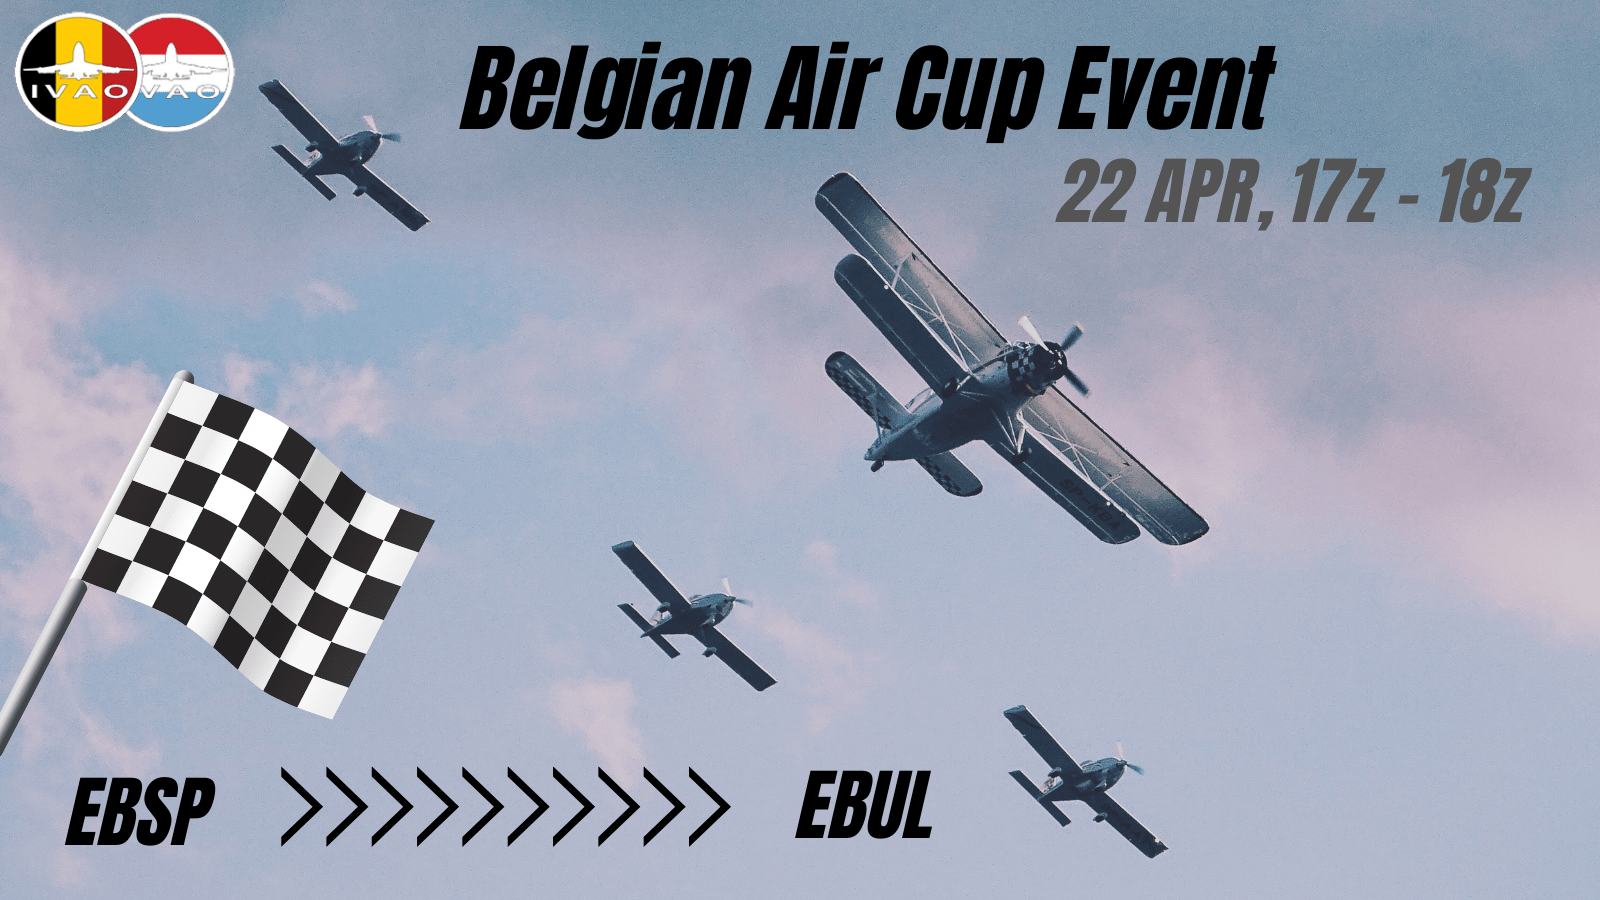 [XB] Belgian Air Cup Event